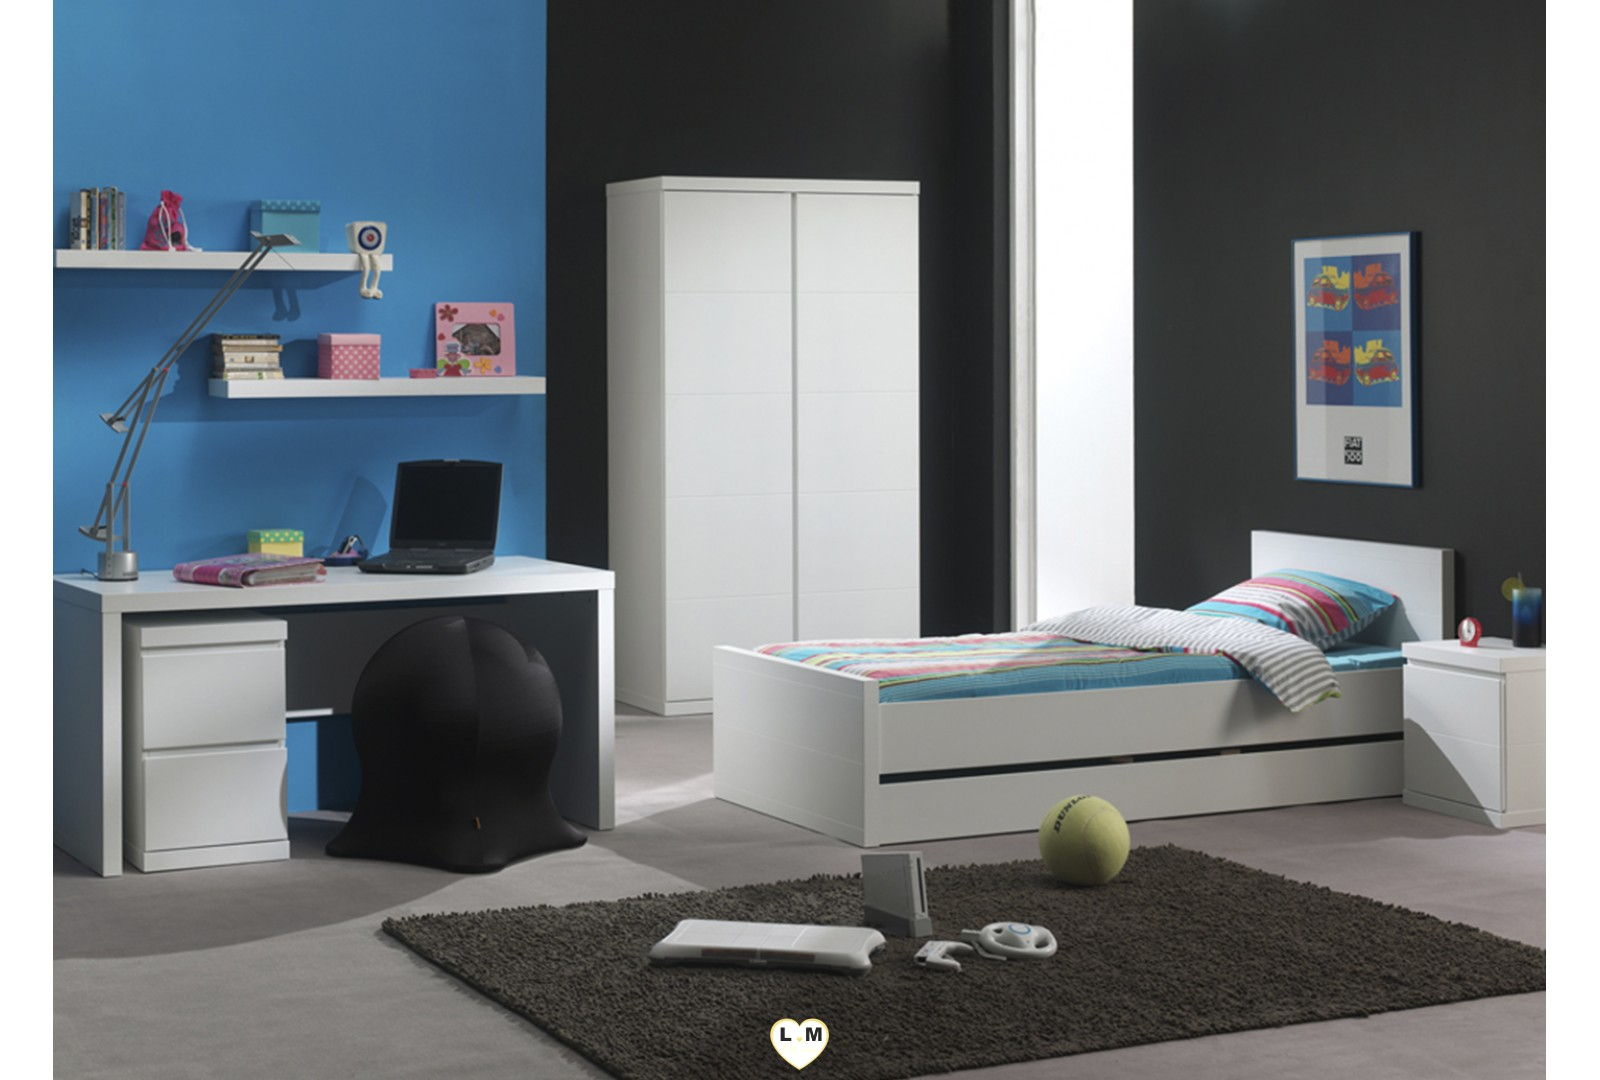 laramy chambre ado le chevet lignemeuble com. Black Bedroom Furniture Sets. Home Design Ideas